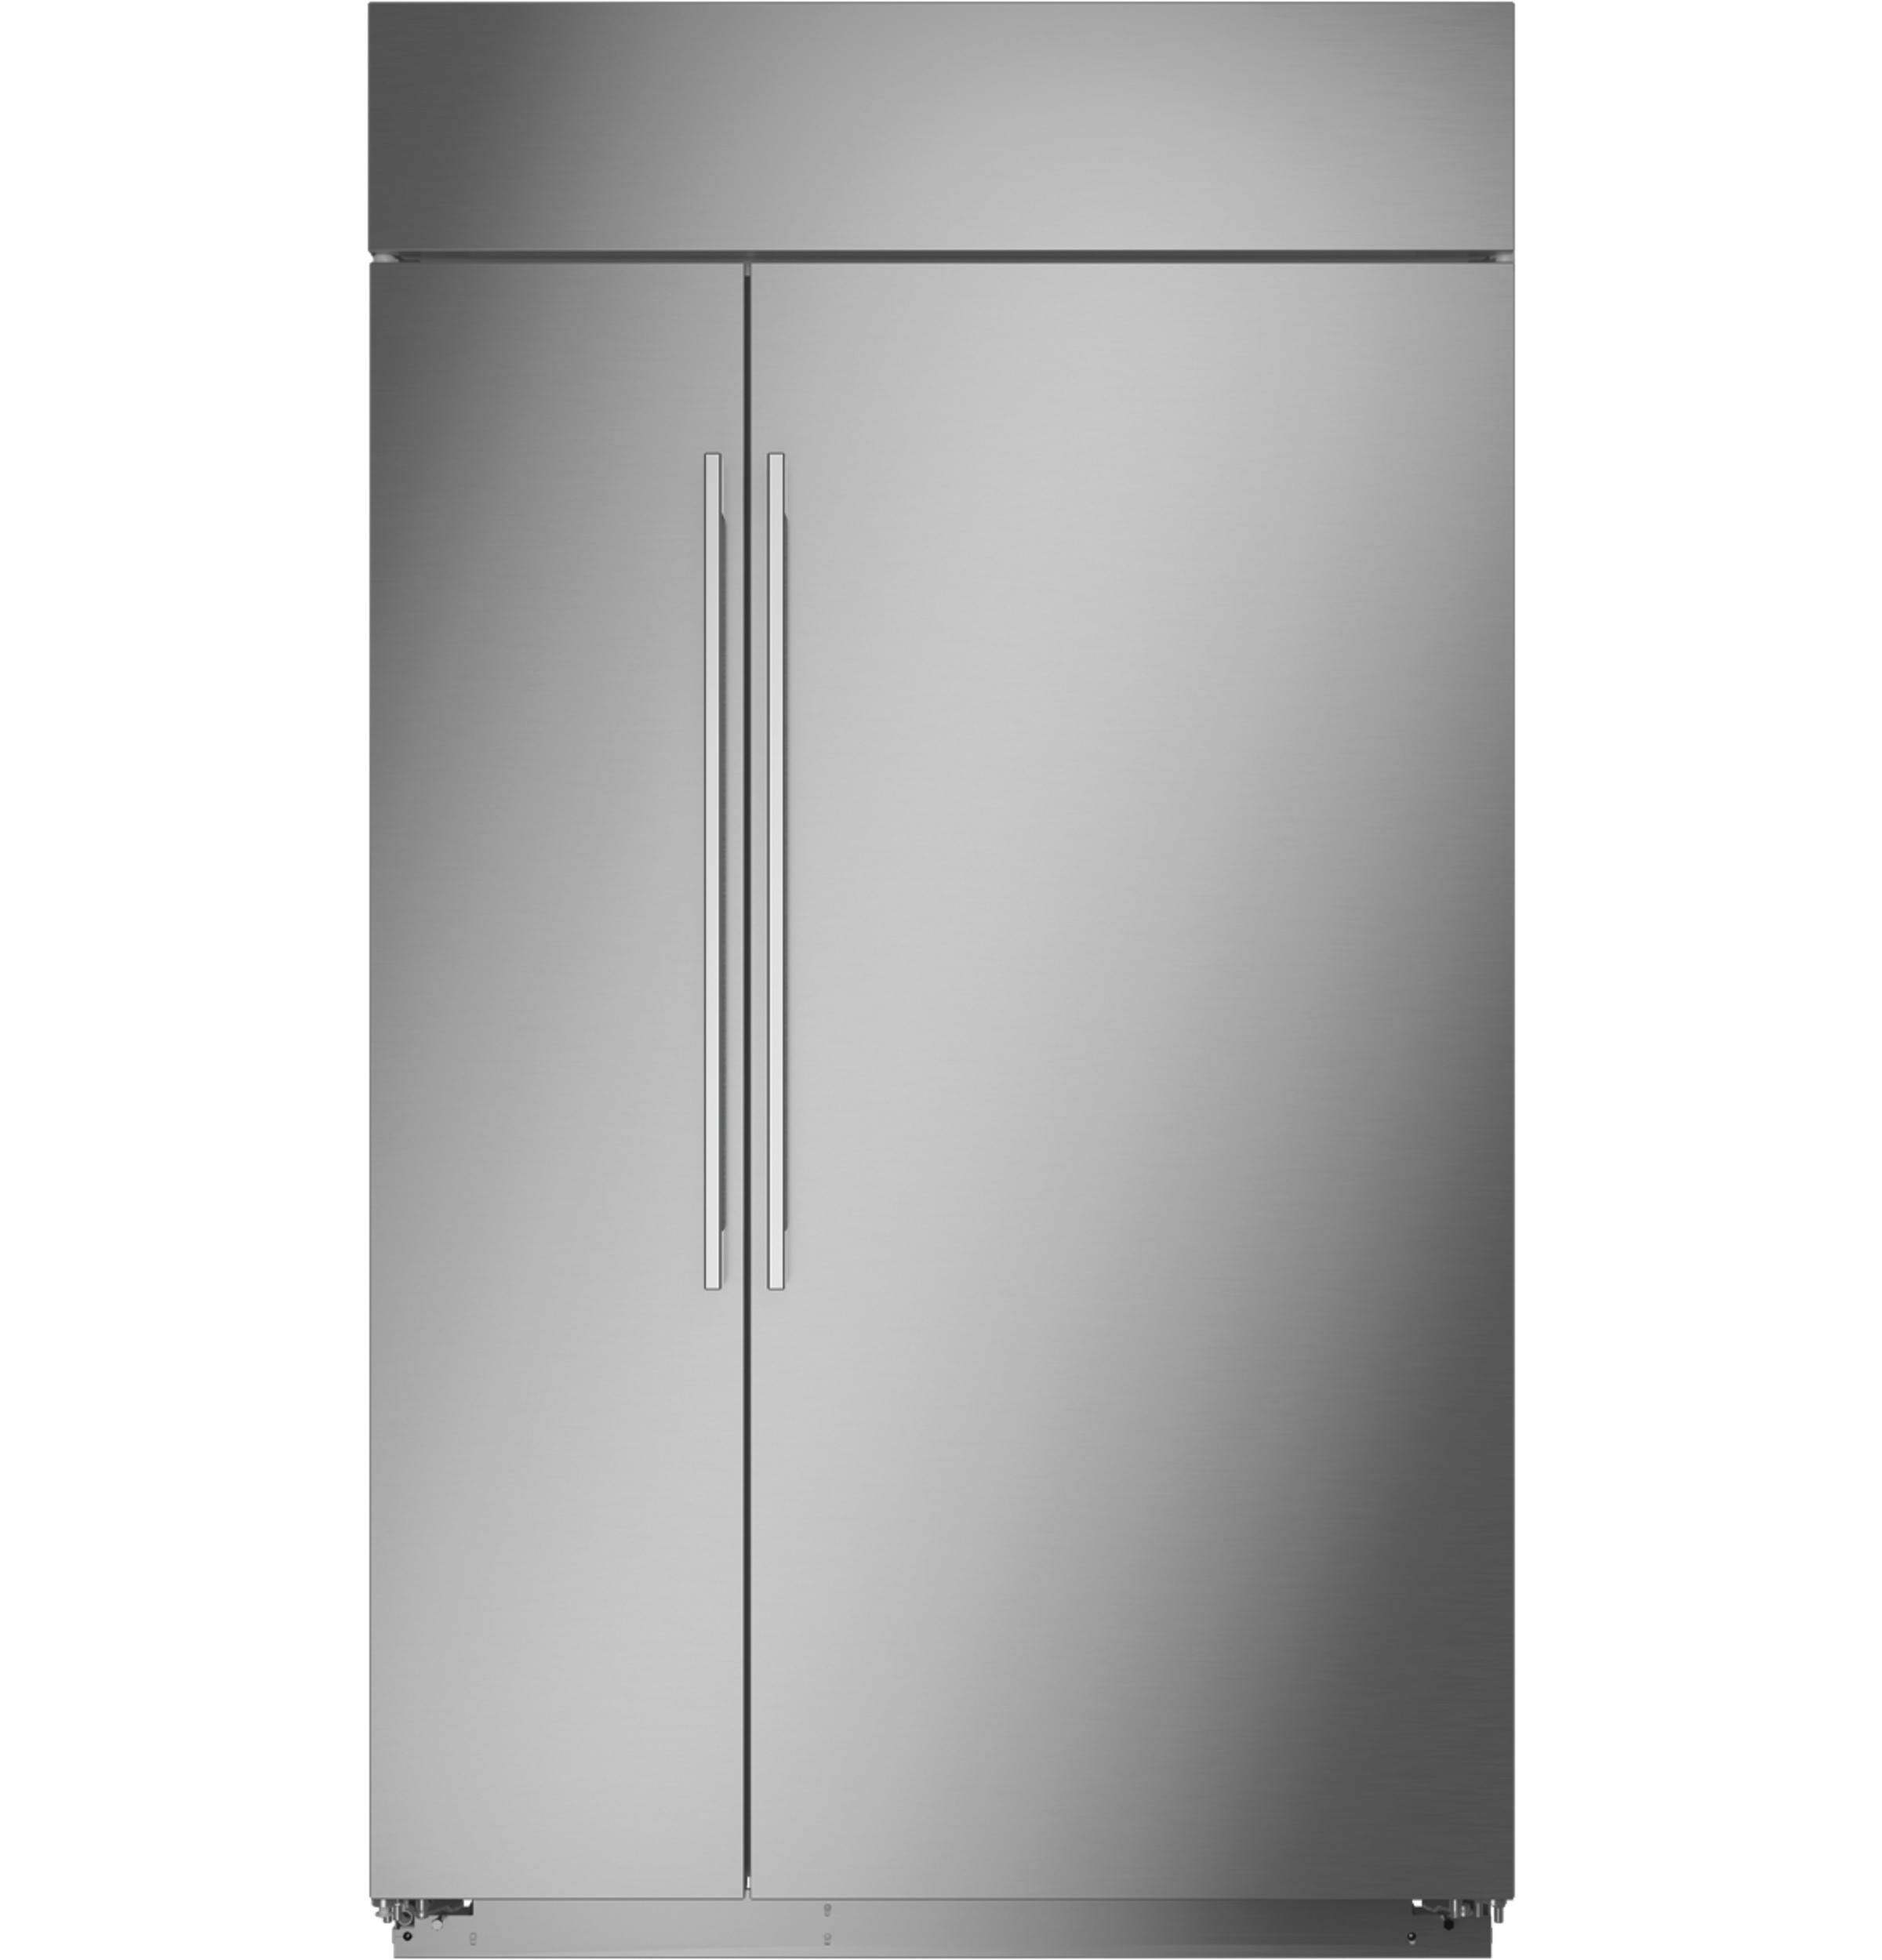 "Monogram Monogram 48"" Smart Built-In Side-by-Side Refrigerator"